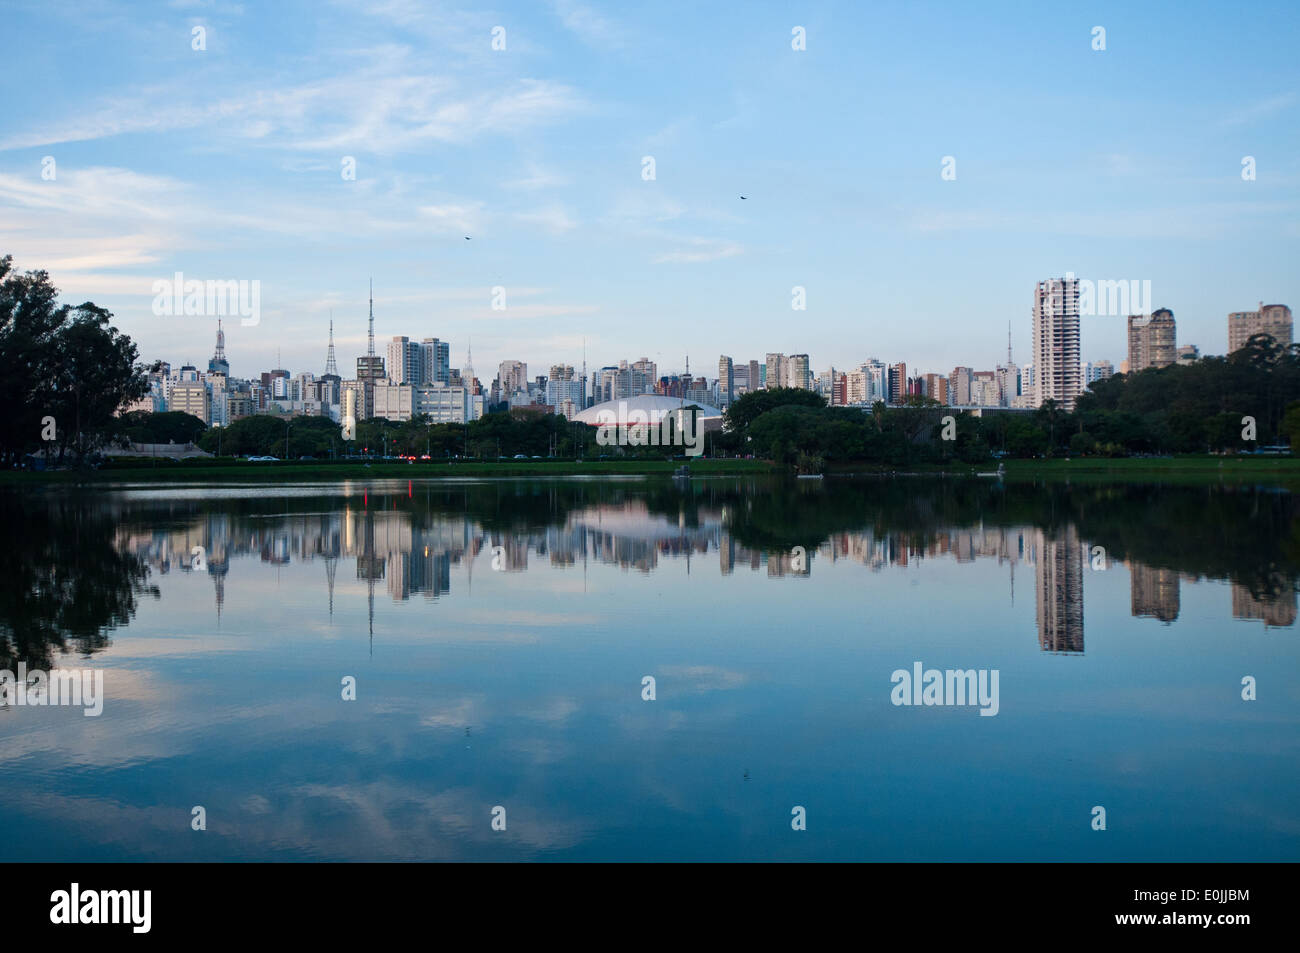 Sao Paulo viewed from Ibirapuera park - Stock Image